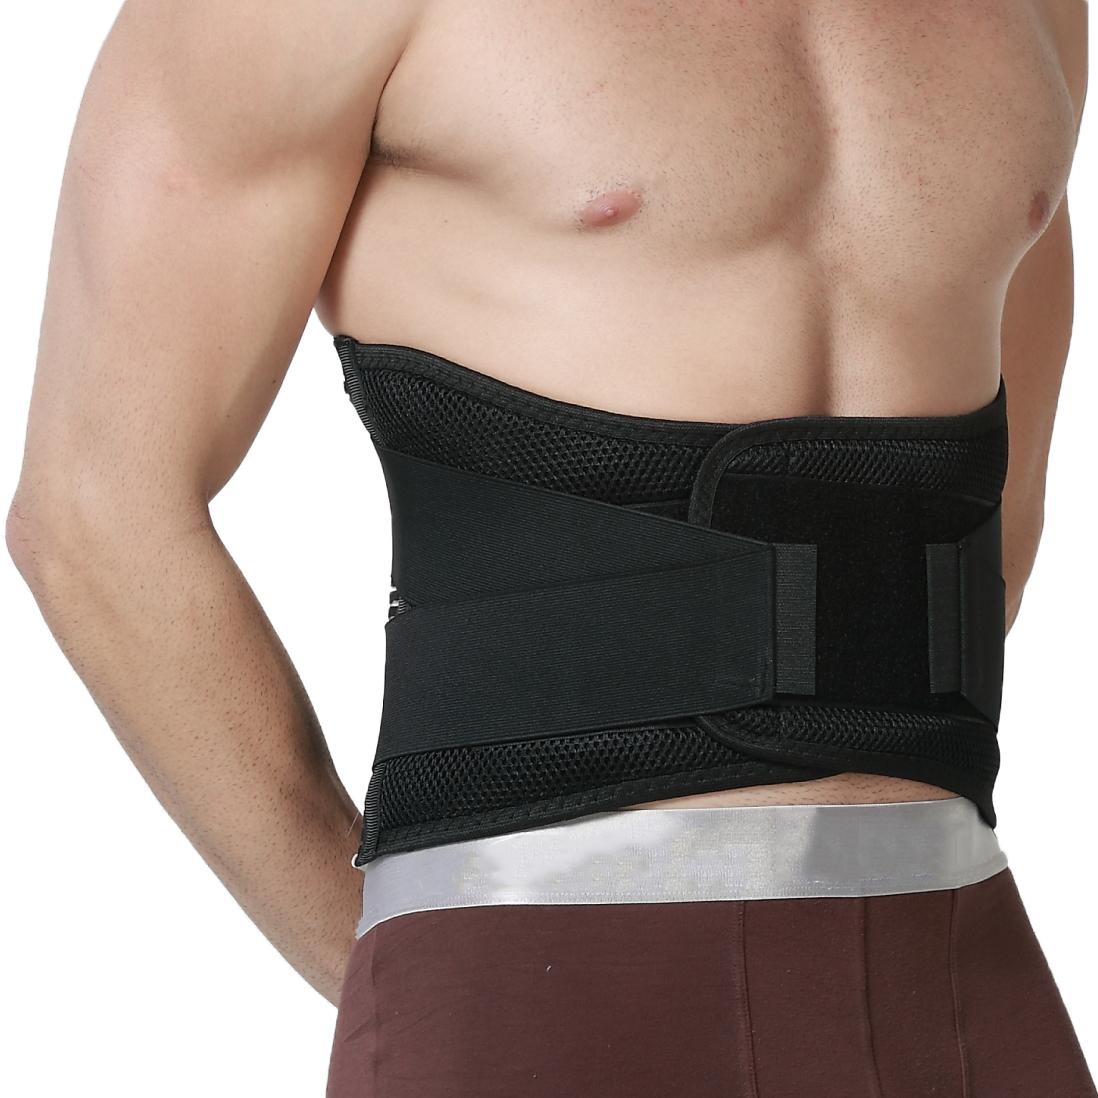 12 Ways to Prevent Back Pain